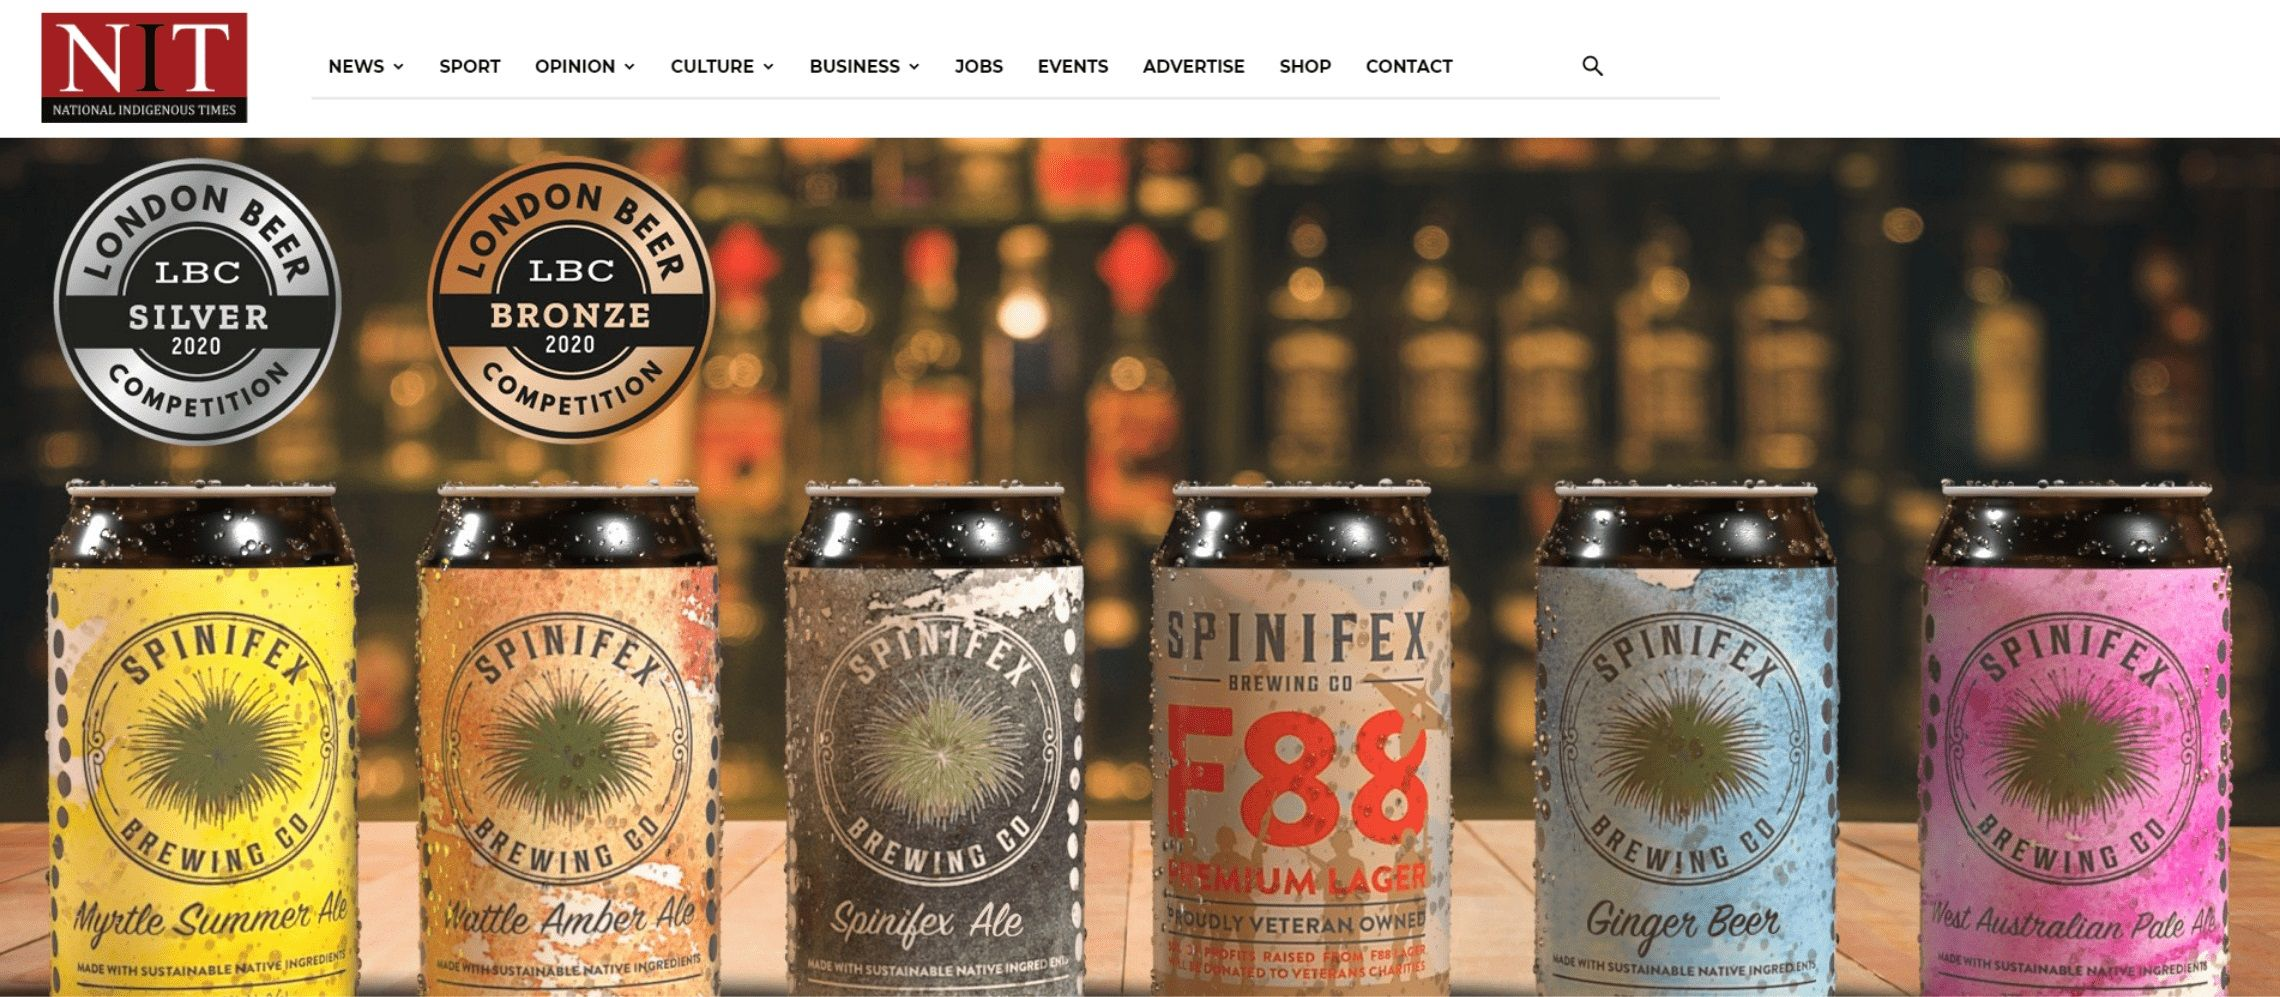 Photo for: Spinifex Brewing Co Wins Silver And Bronze At London Beer Competition